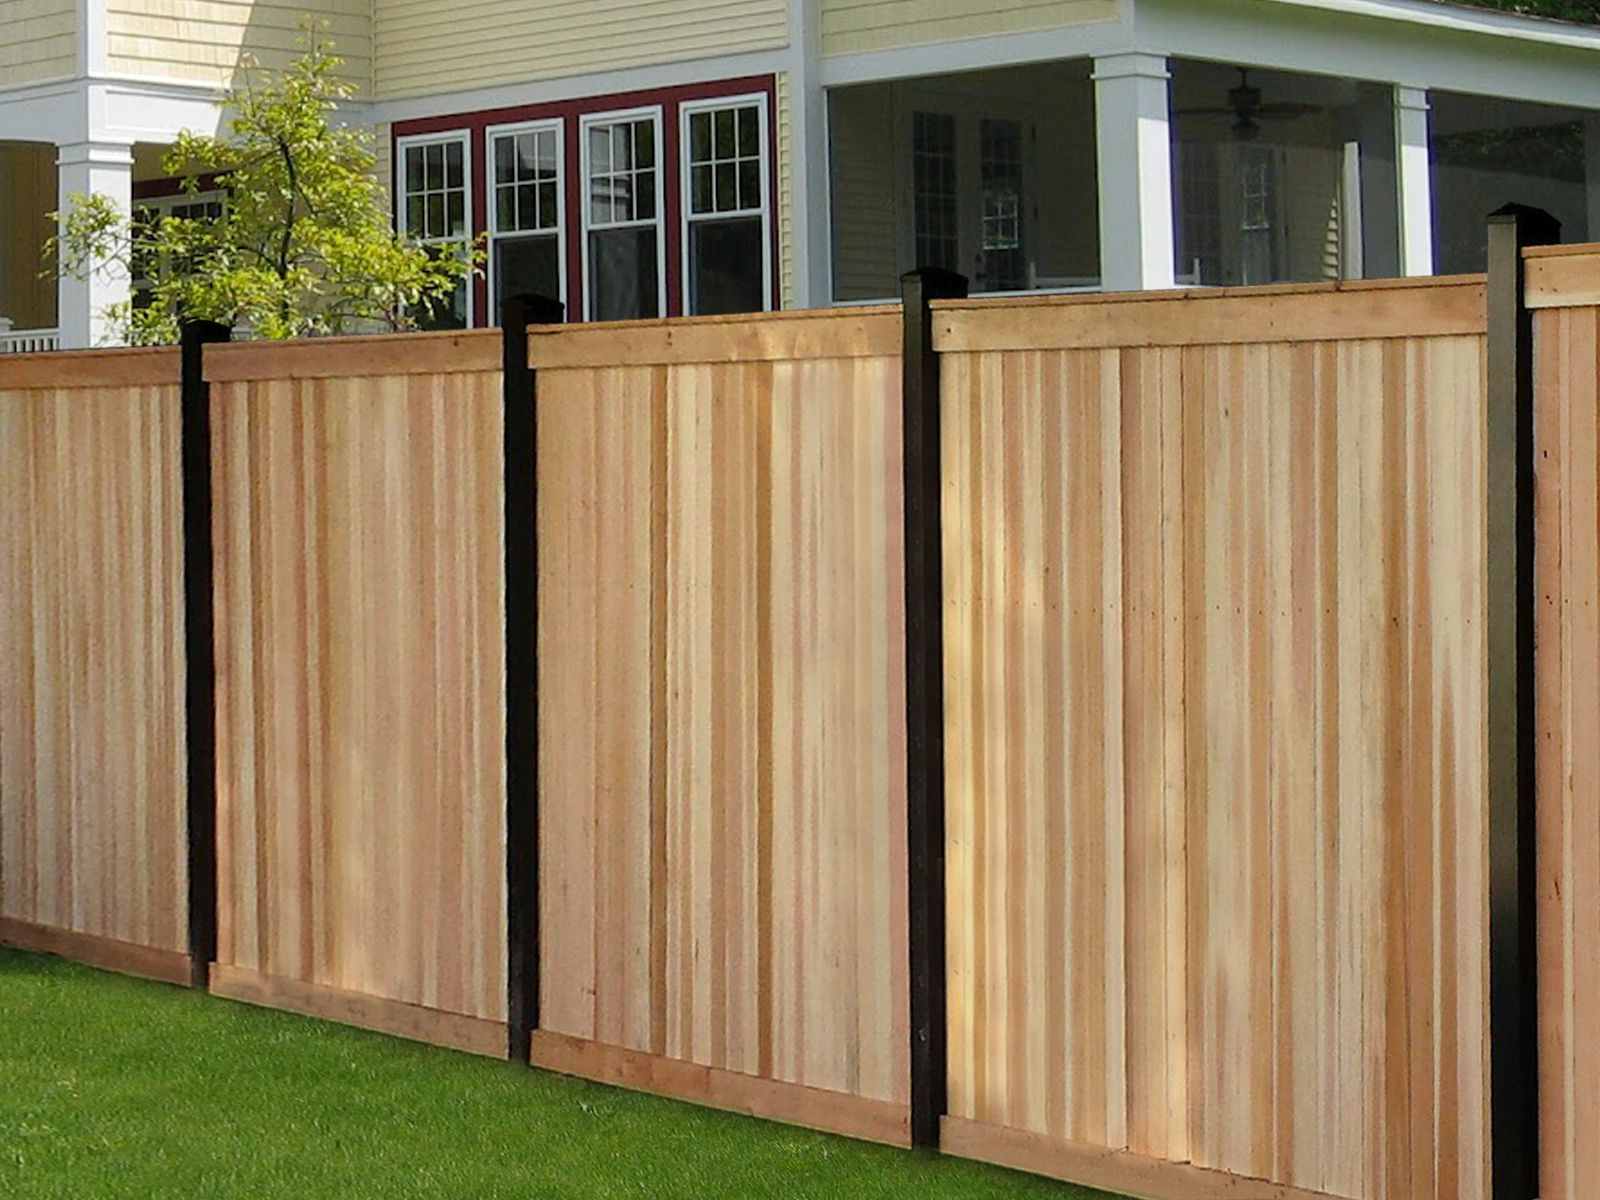 Black Painted Wood Fencing Google Search Wood Fence